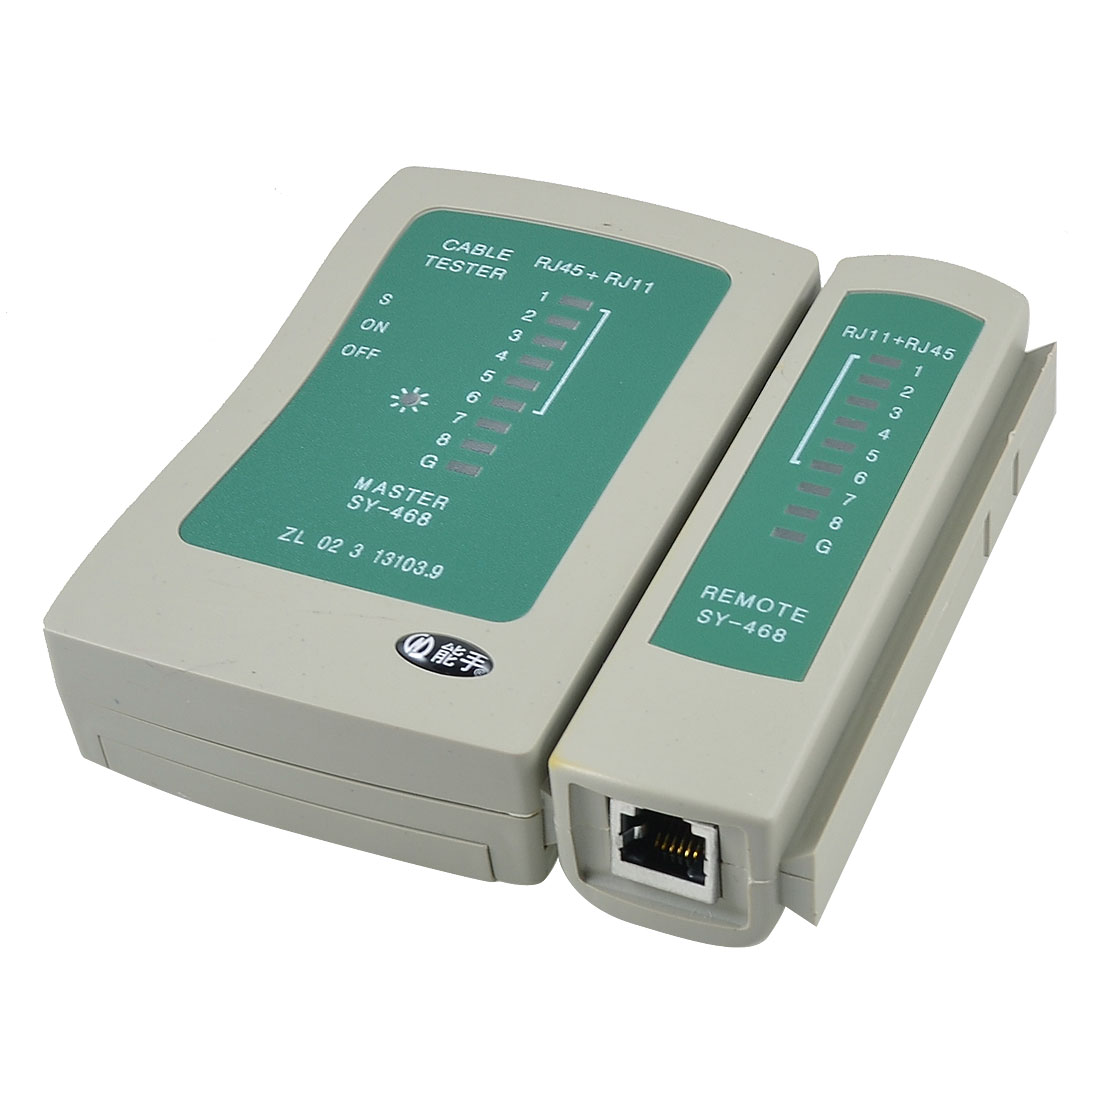 Green Khaki On/Off RJ11 RJ45 LAN Network Phone Cable Tester SY- 468